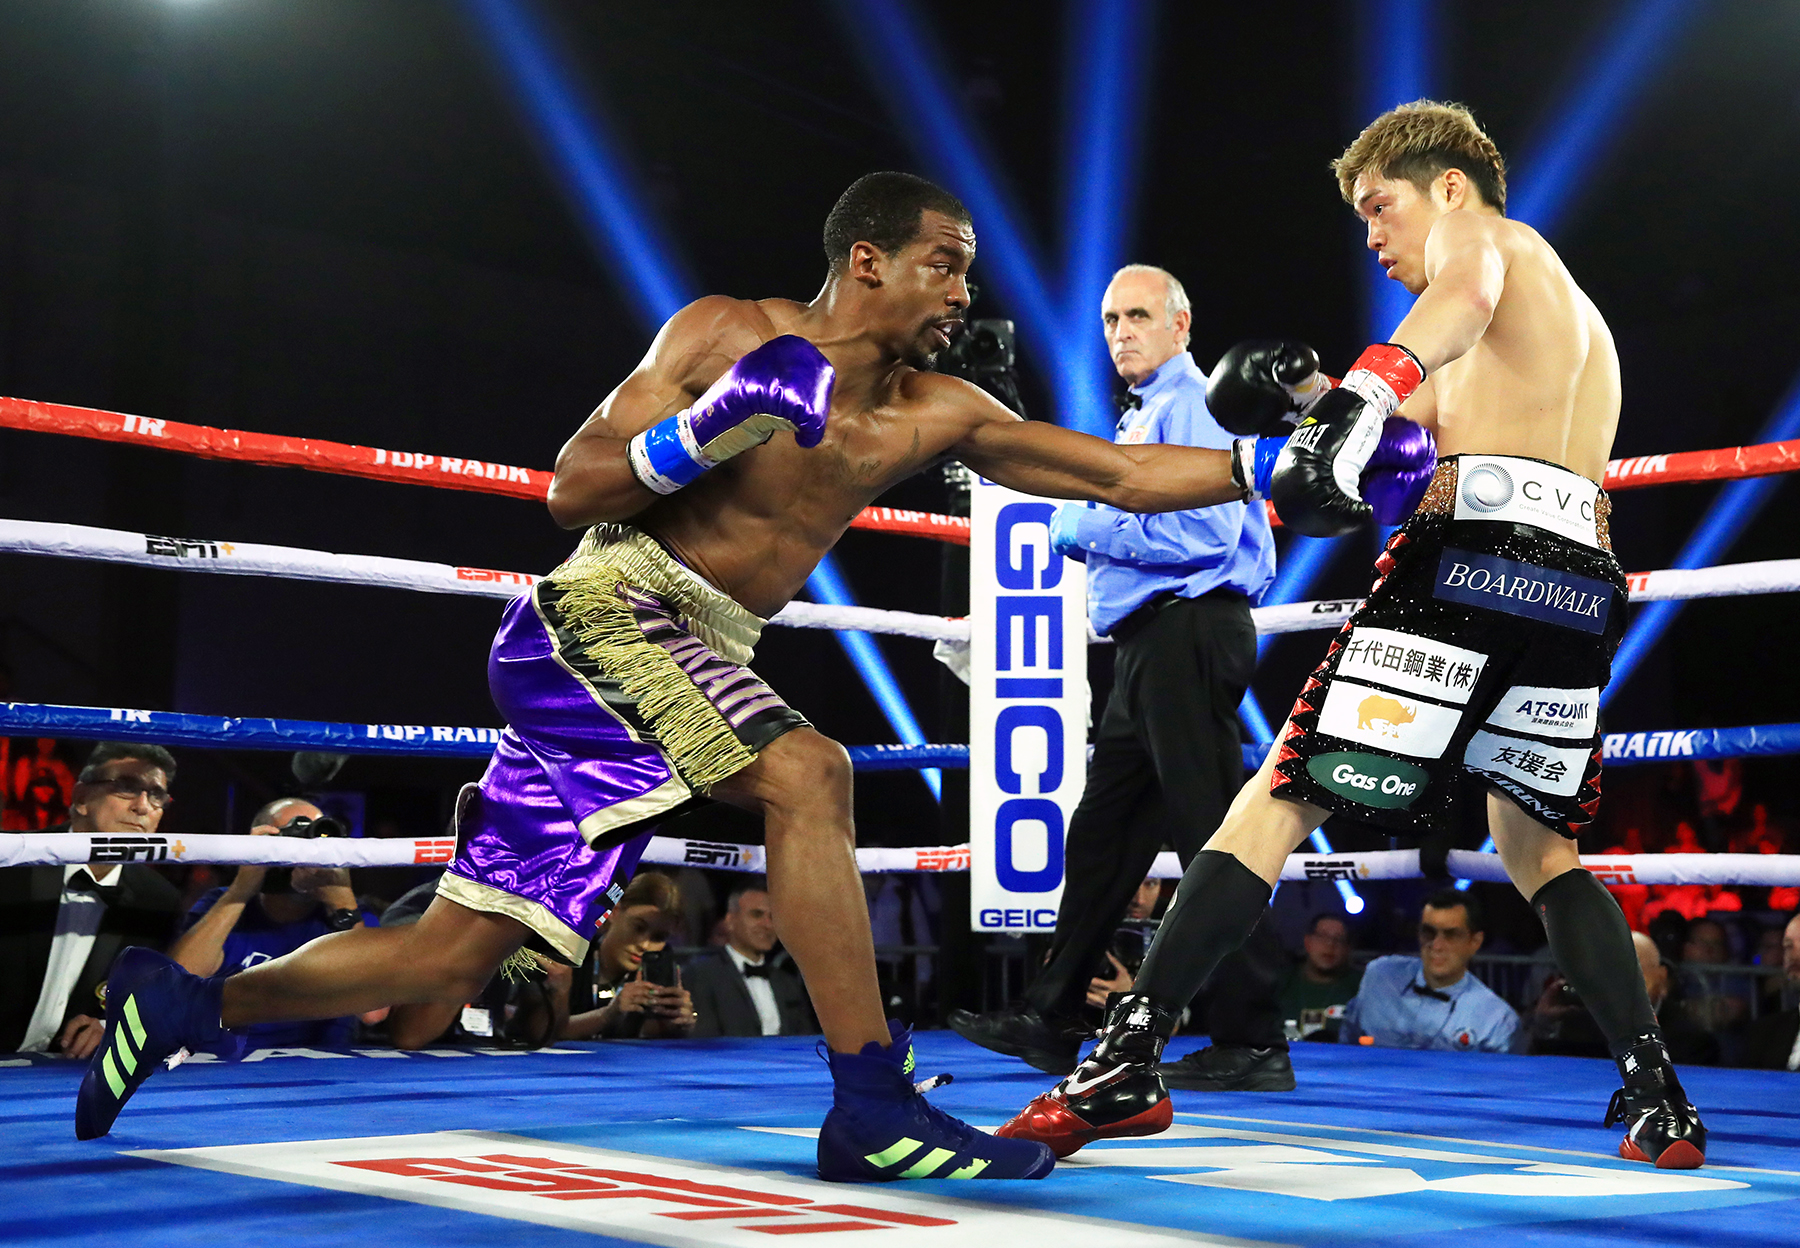 Jamel Herring's defensive skills have greatly improved under trainer Brian McIntrye. Photo: Ed Mulholland, Matchroom Boxing